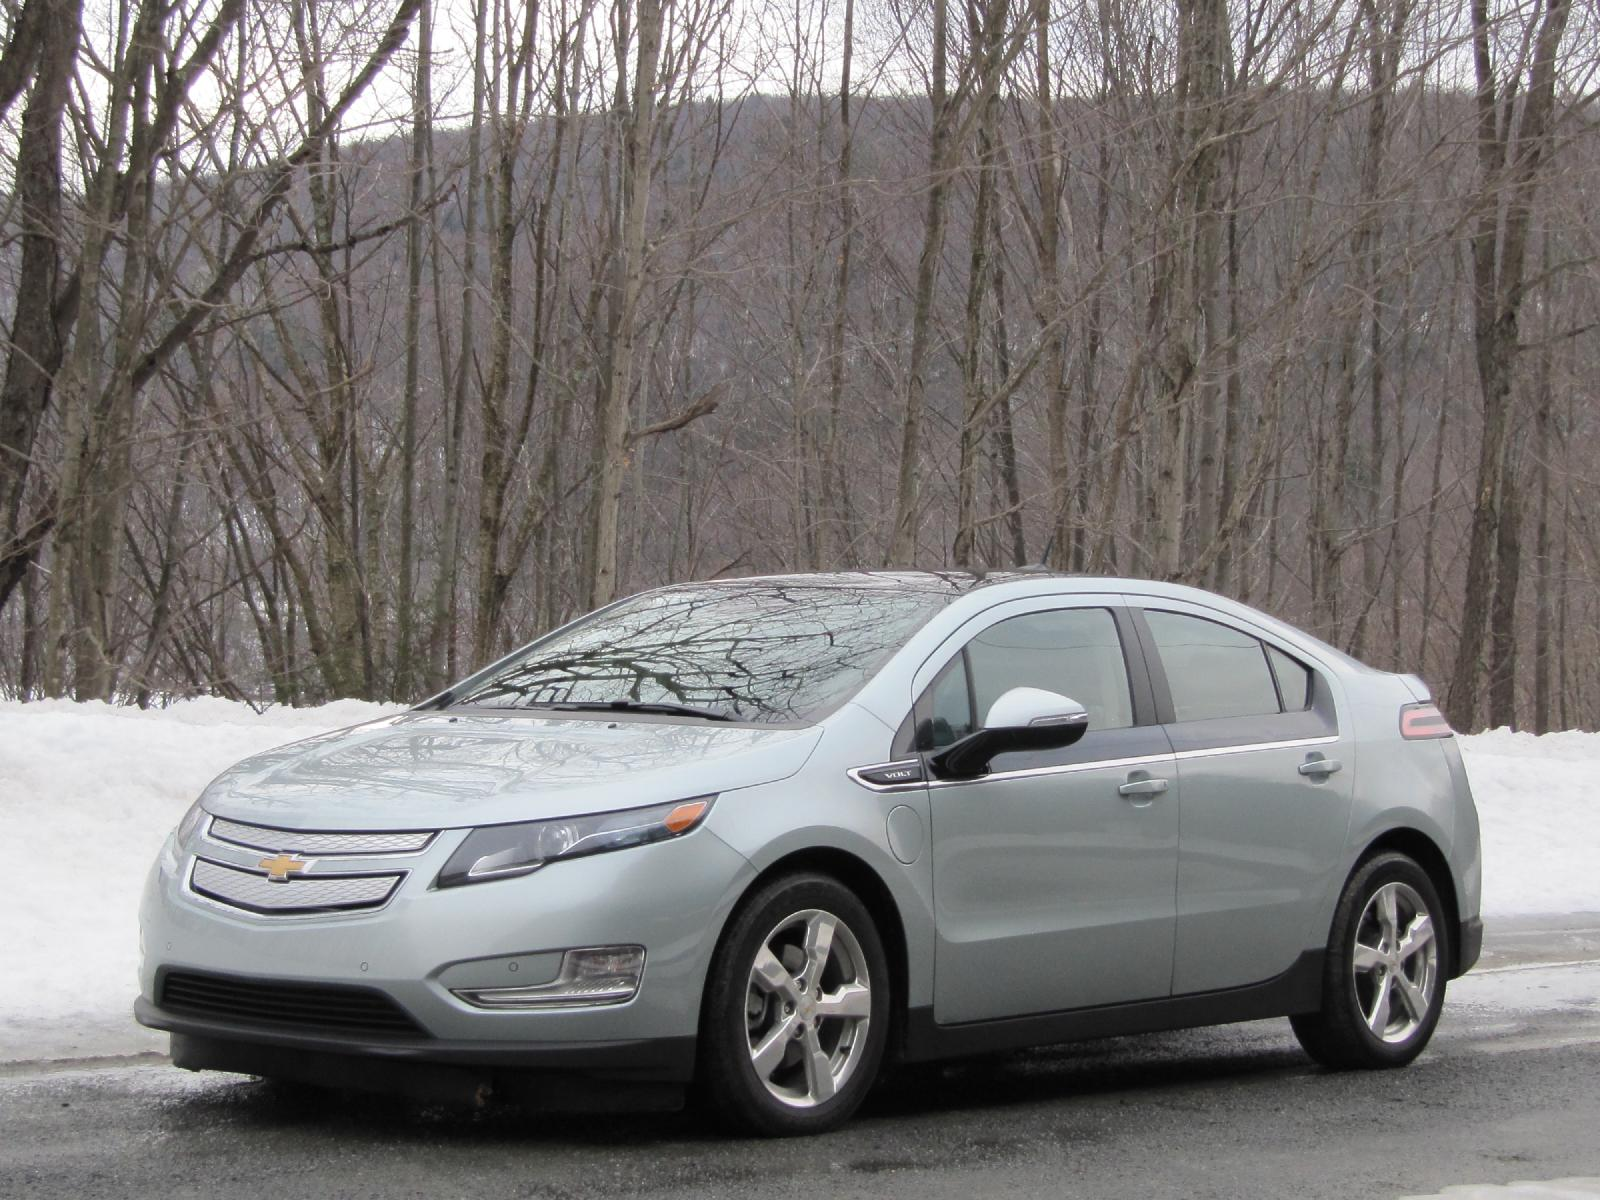 2012 chevy volt price cut pay less but get a lot less. Black Bedroom Furniture Sets. Home Design Ideas